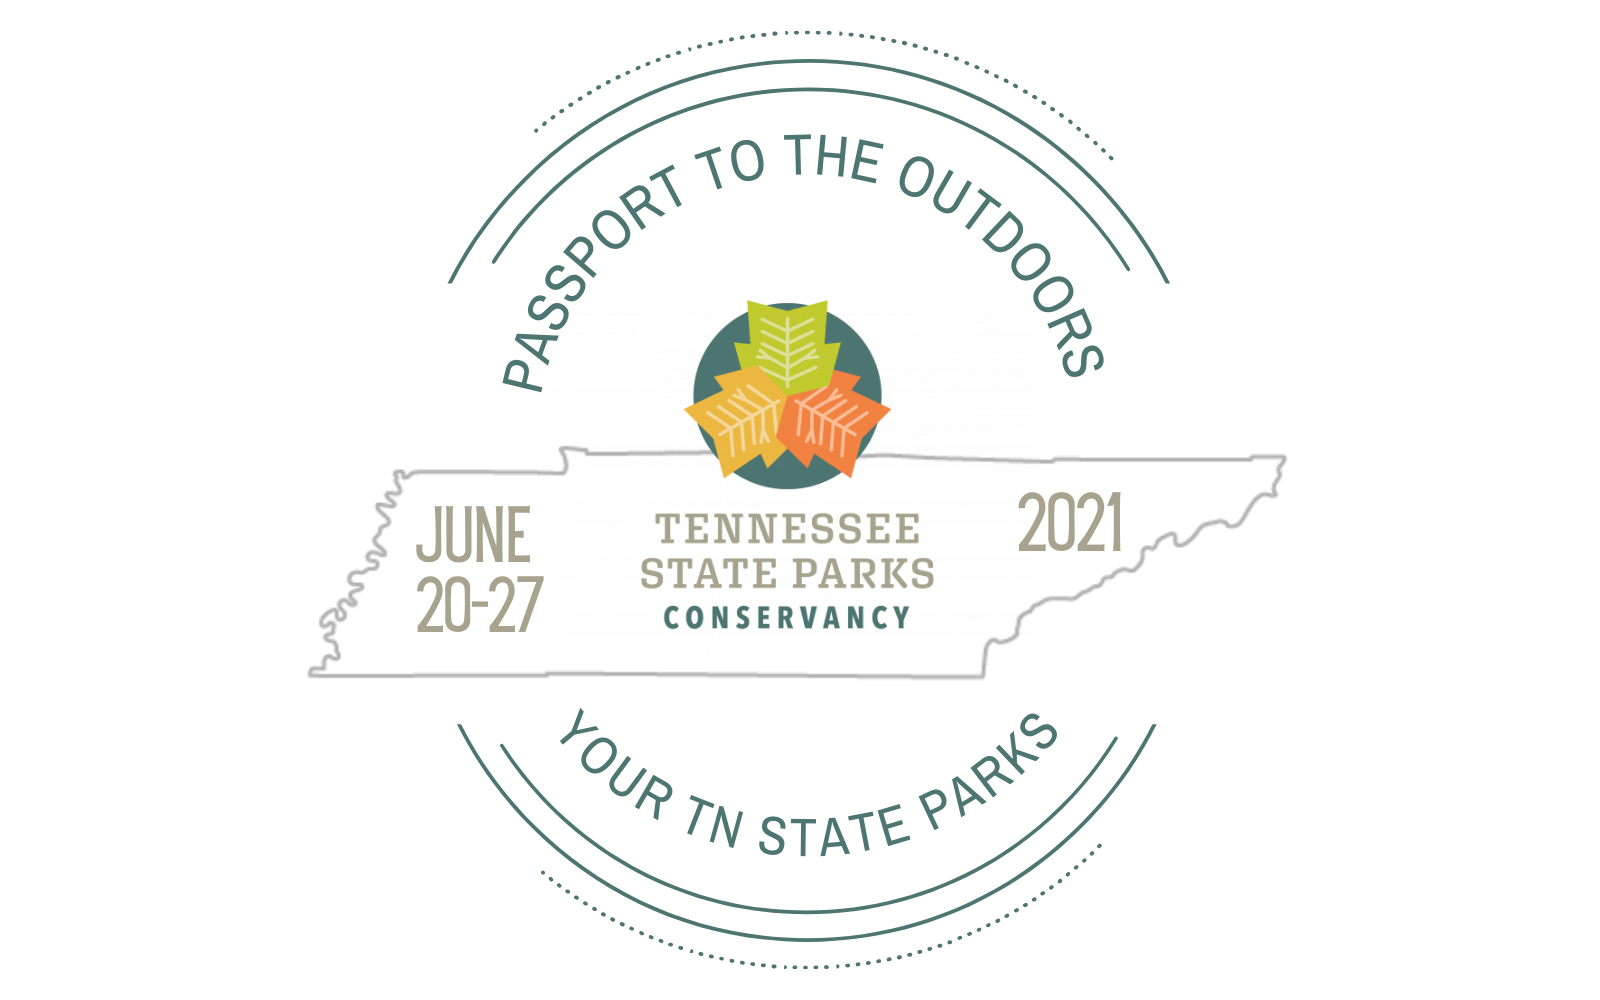 Passport to the Outdoors presented by Piedmont Natural Gas image